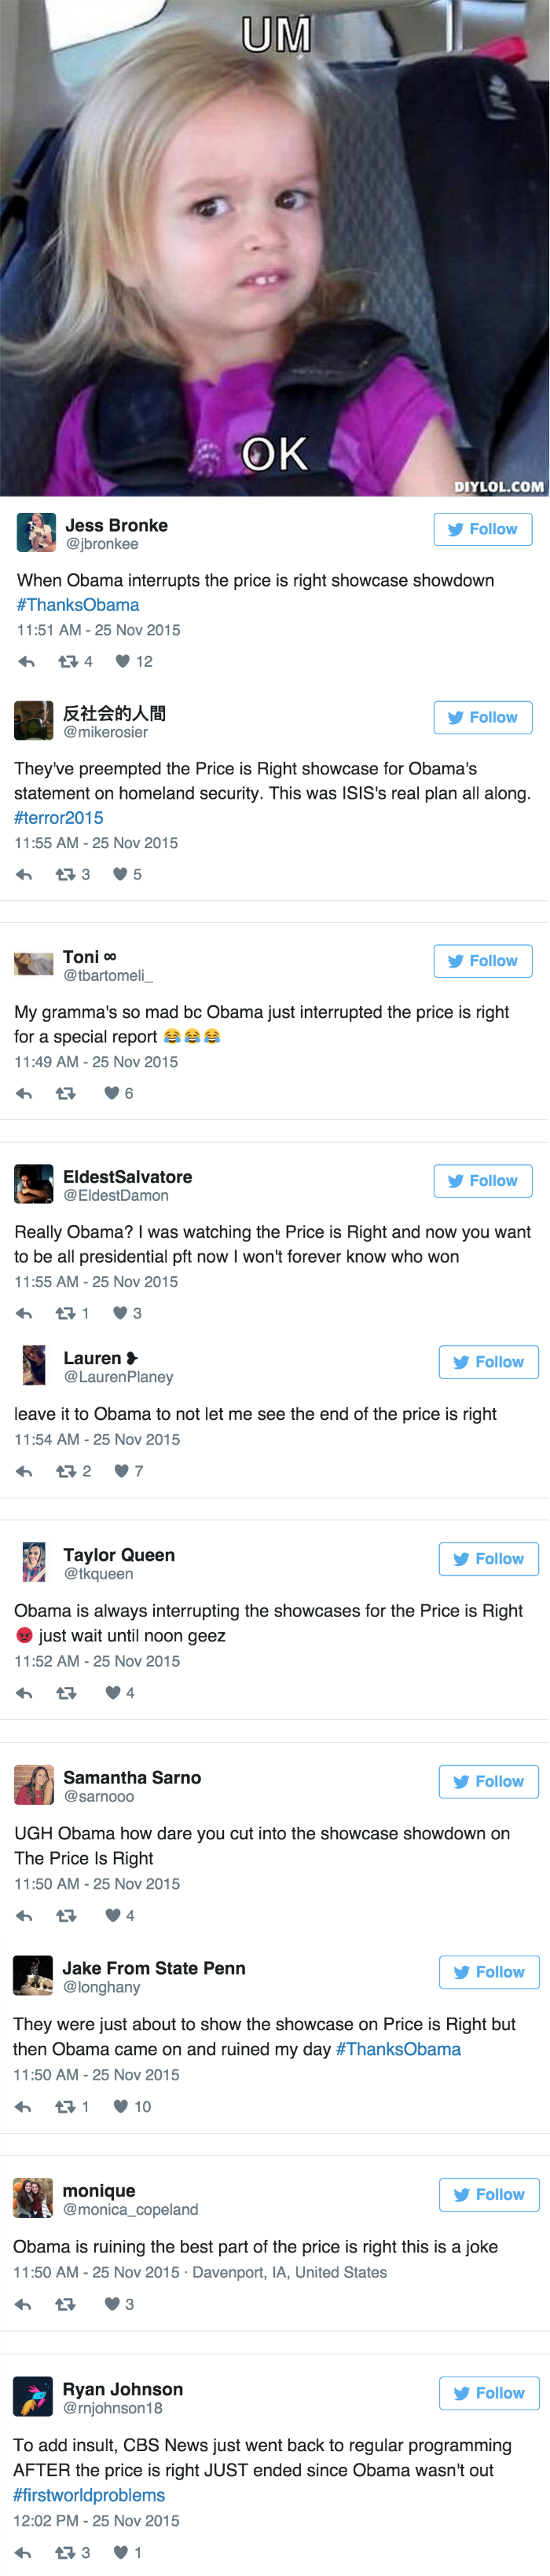 social media fail POTUS interrupts ending of Price is Right and pays a price on Twitter